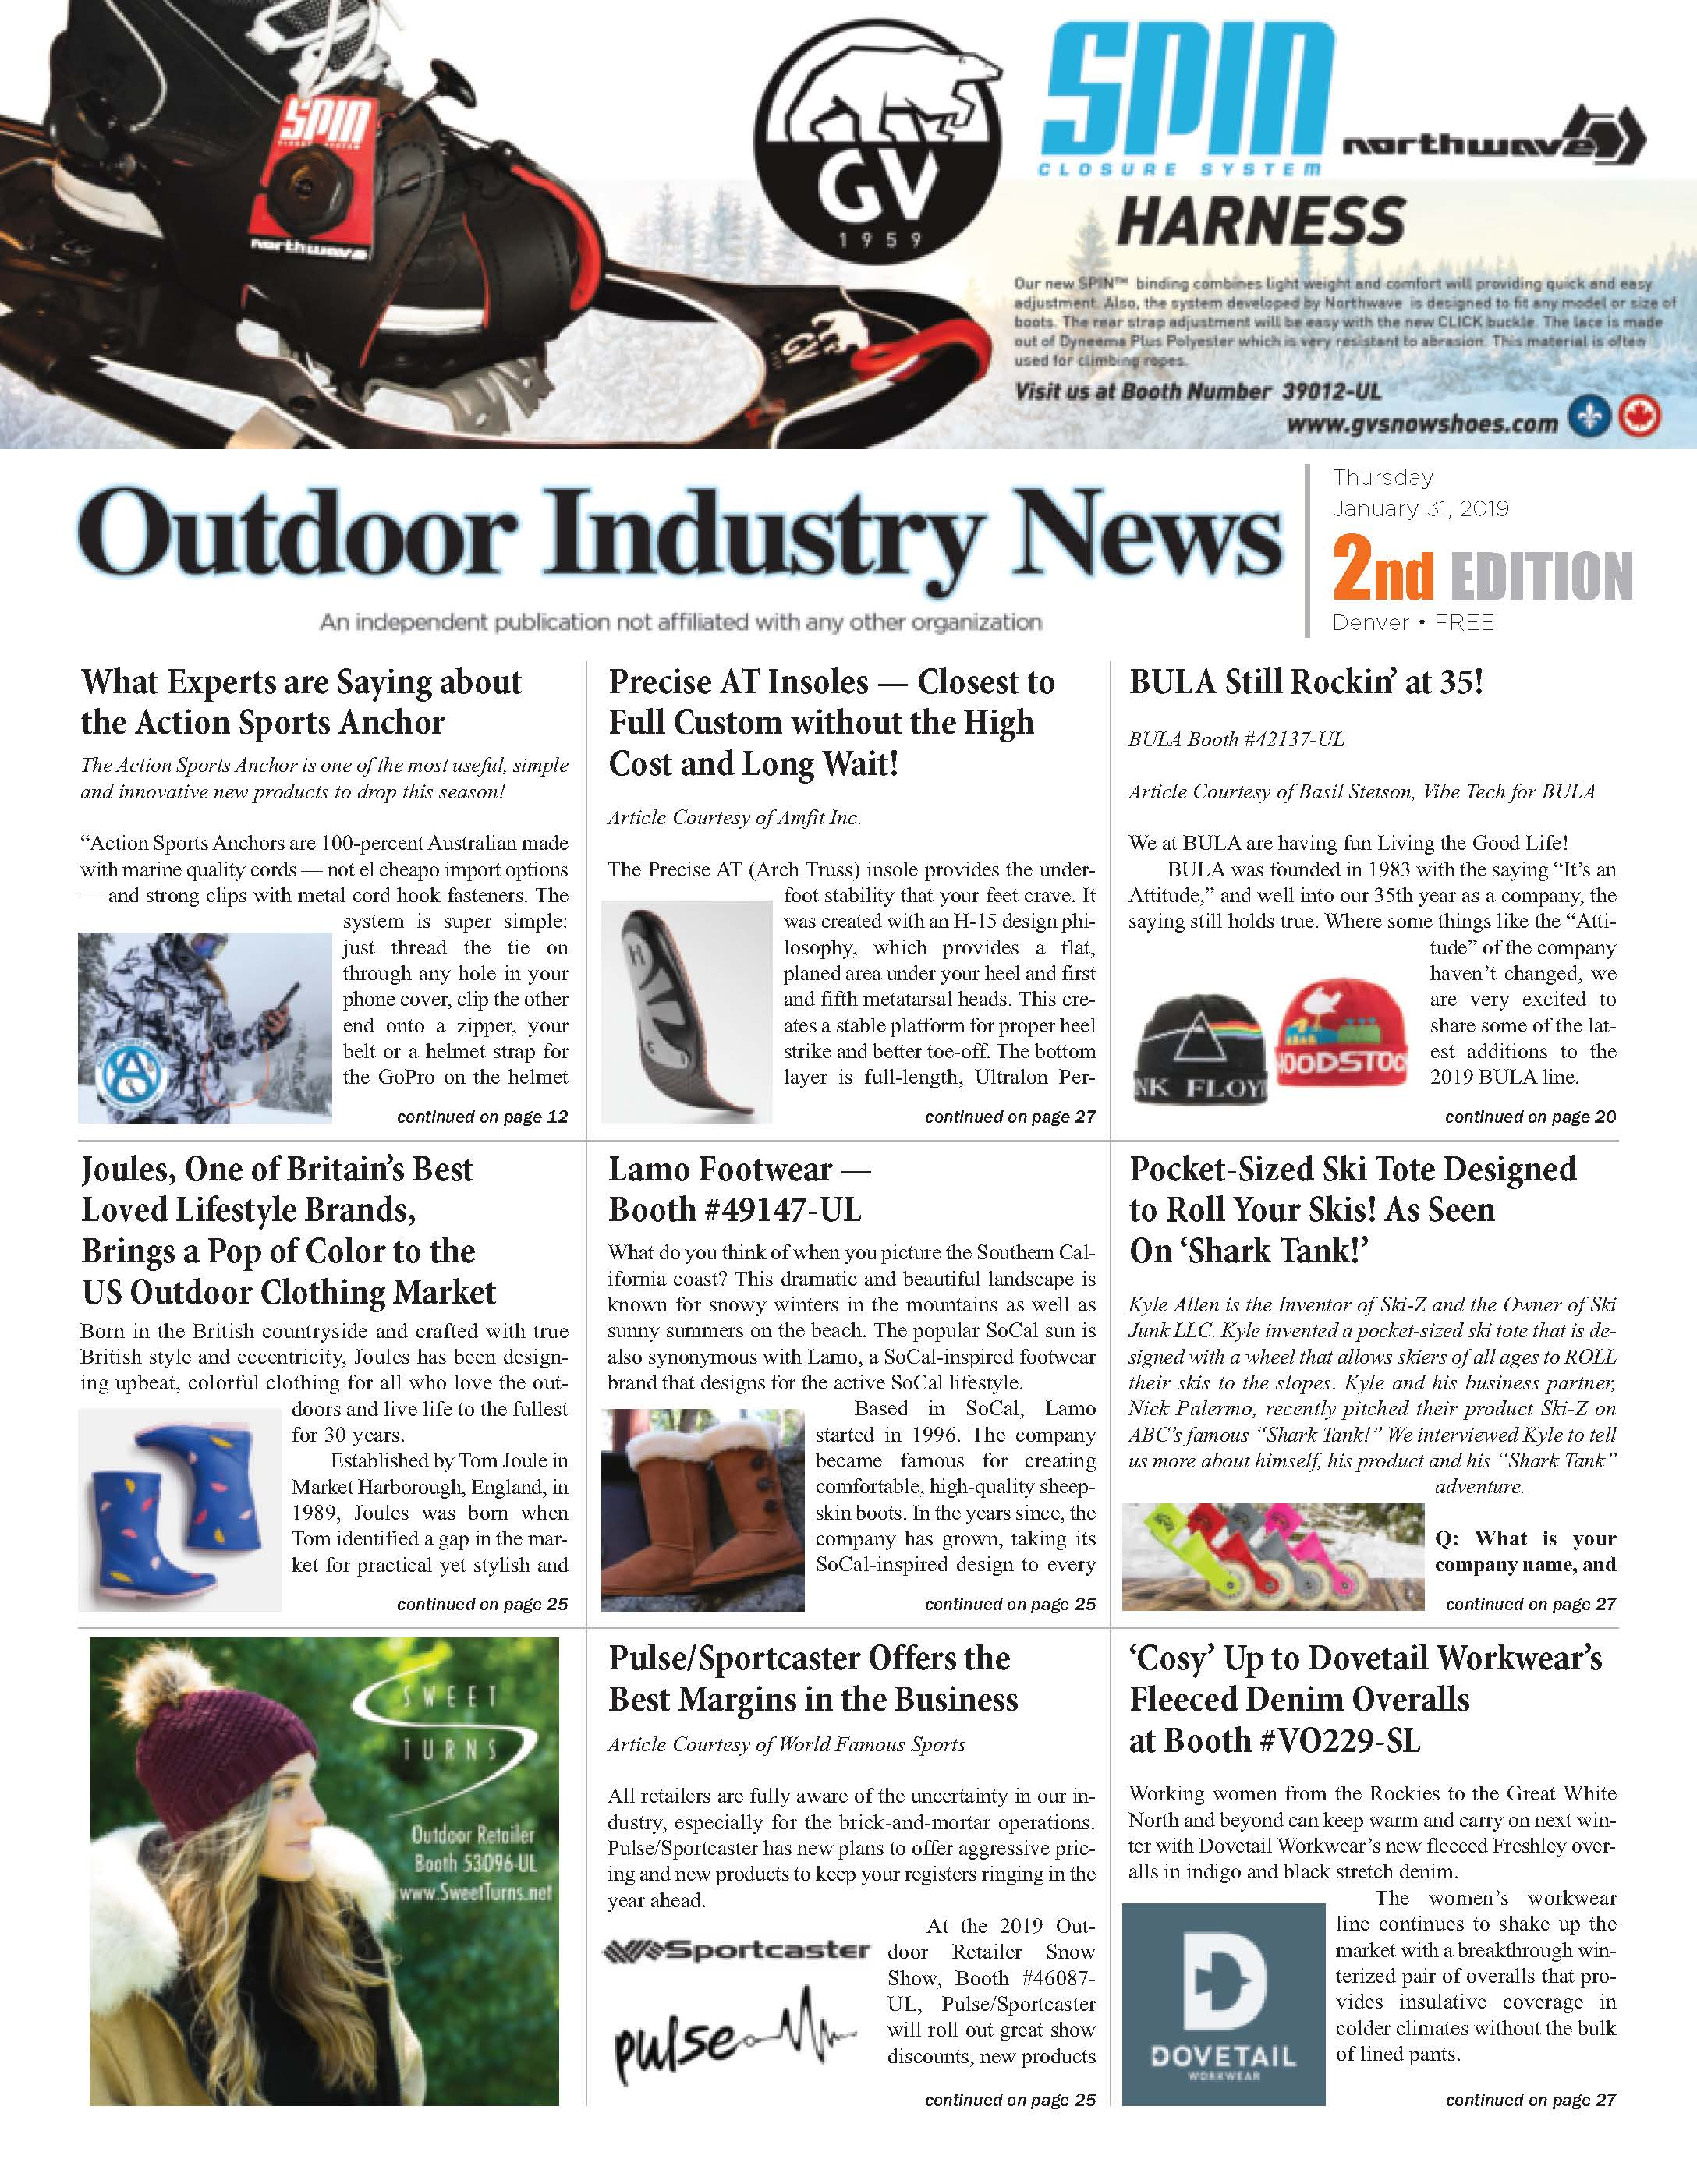 Outdoor Industry News